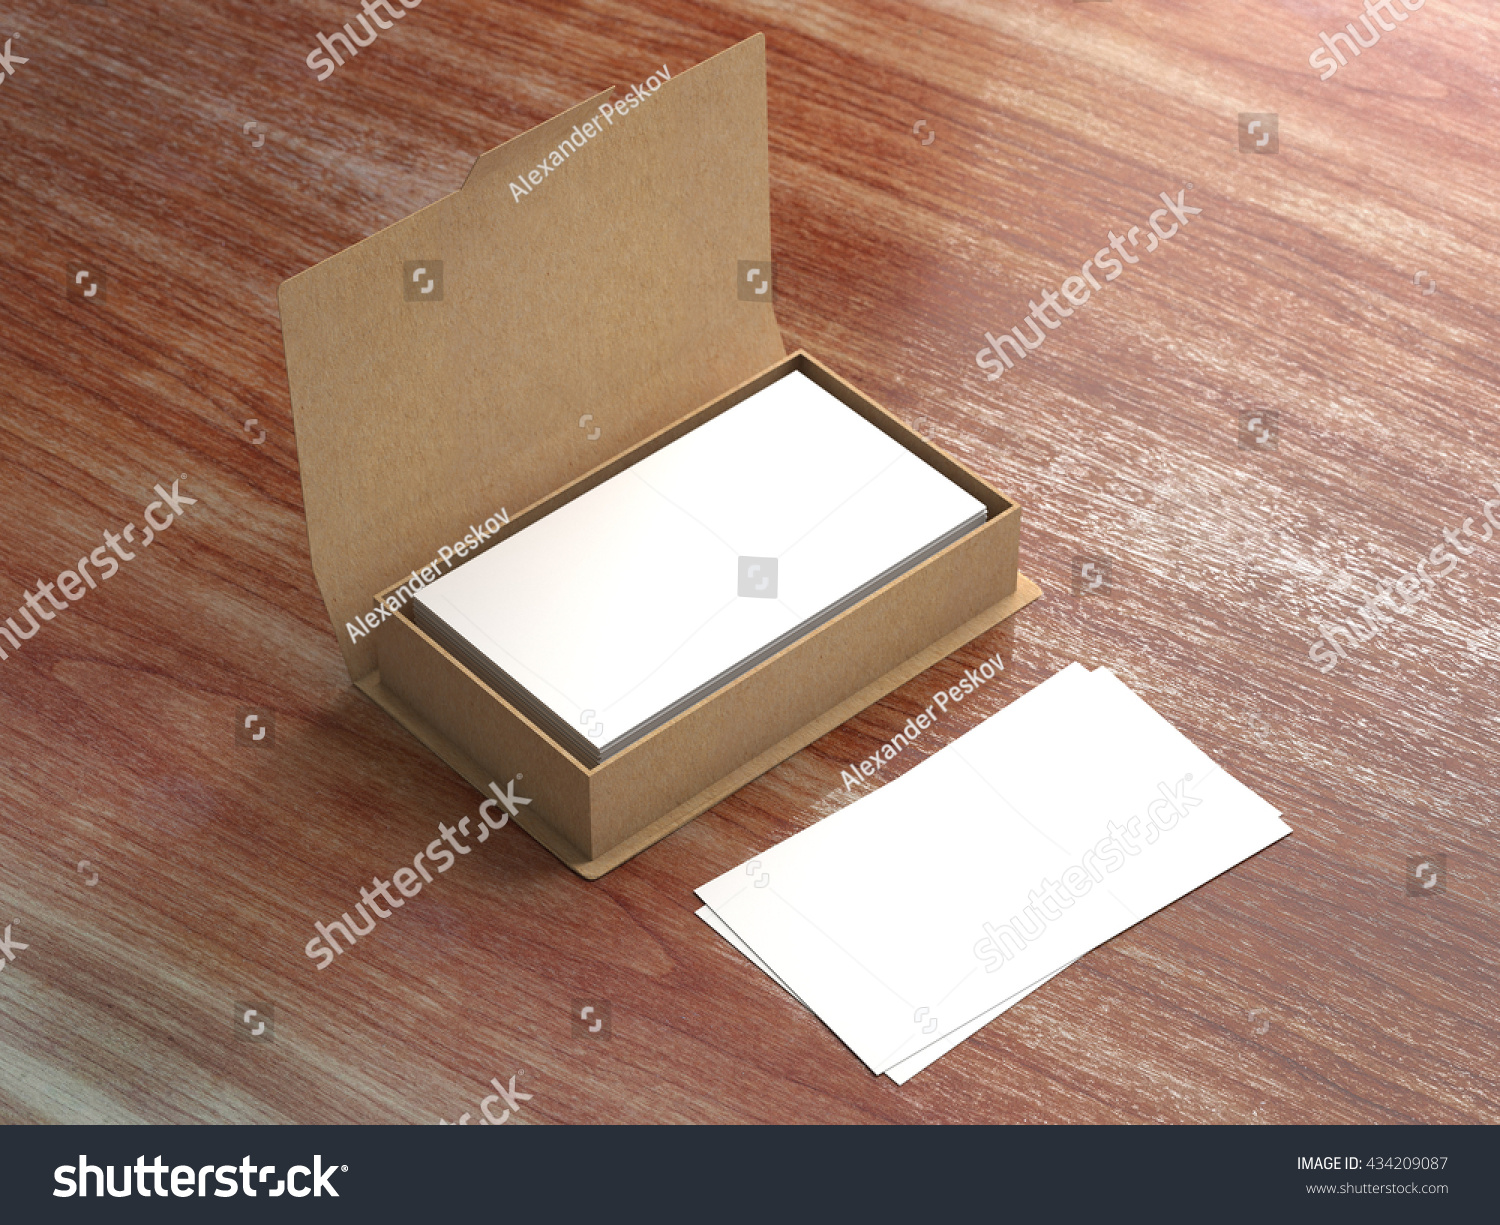 Business card craft carton box mock stock illustration 434209087 business card in craft carton box mock up contact cards in kraft paper container colourmoves